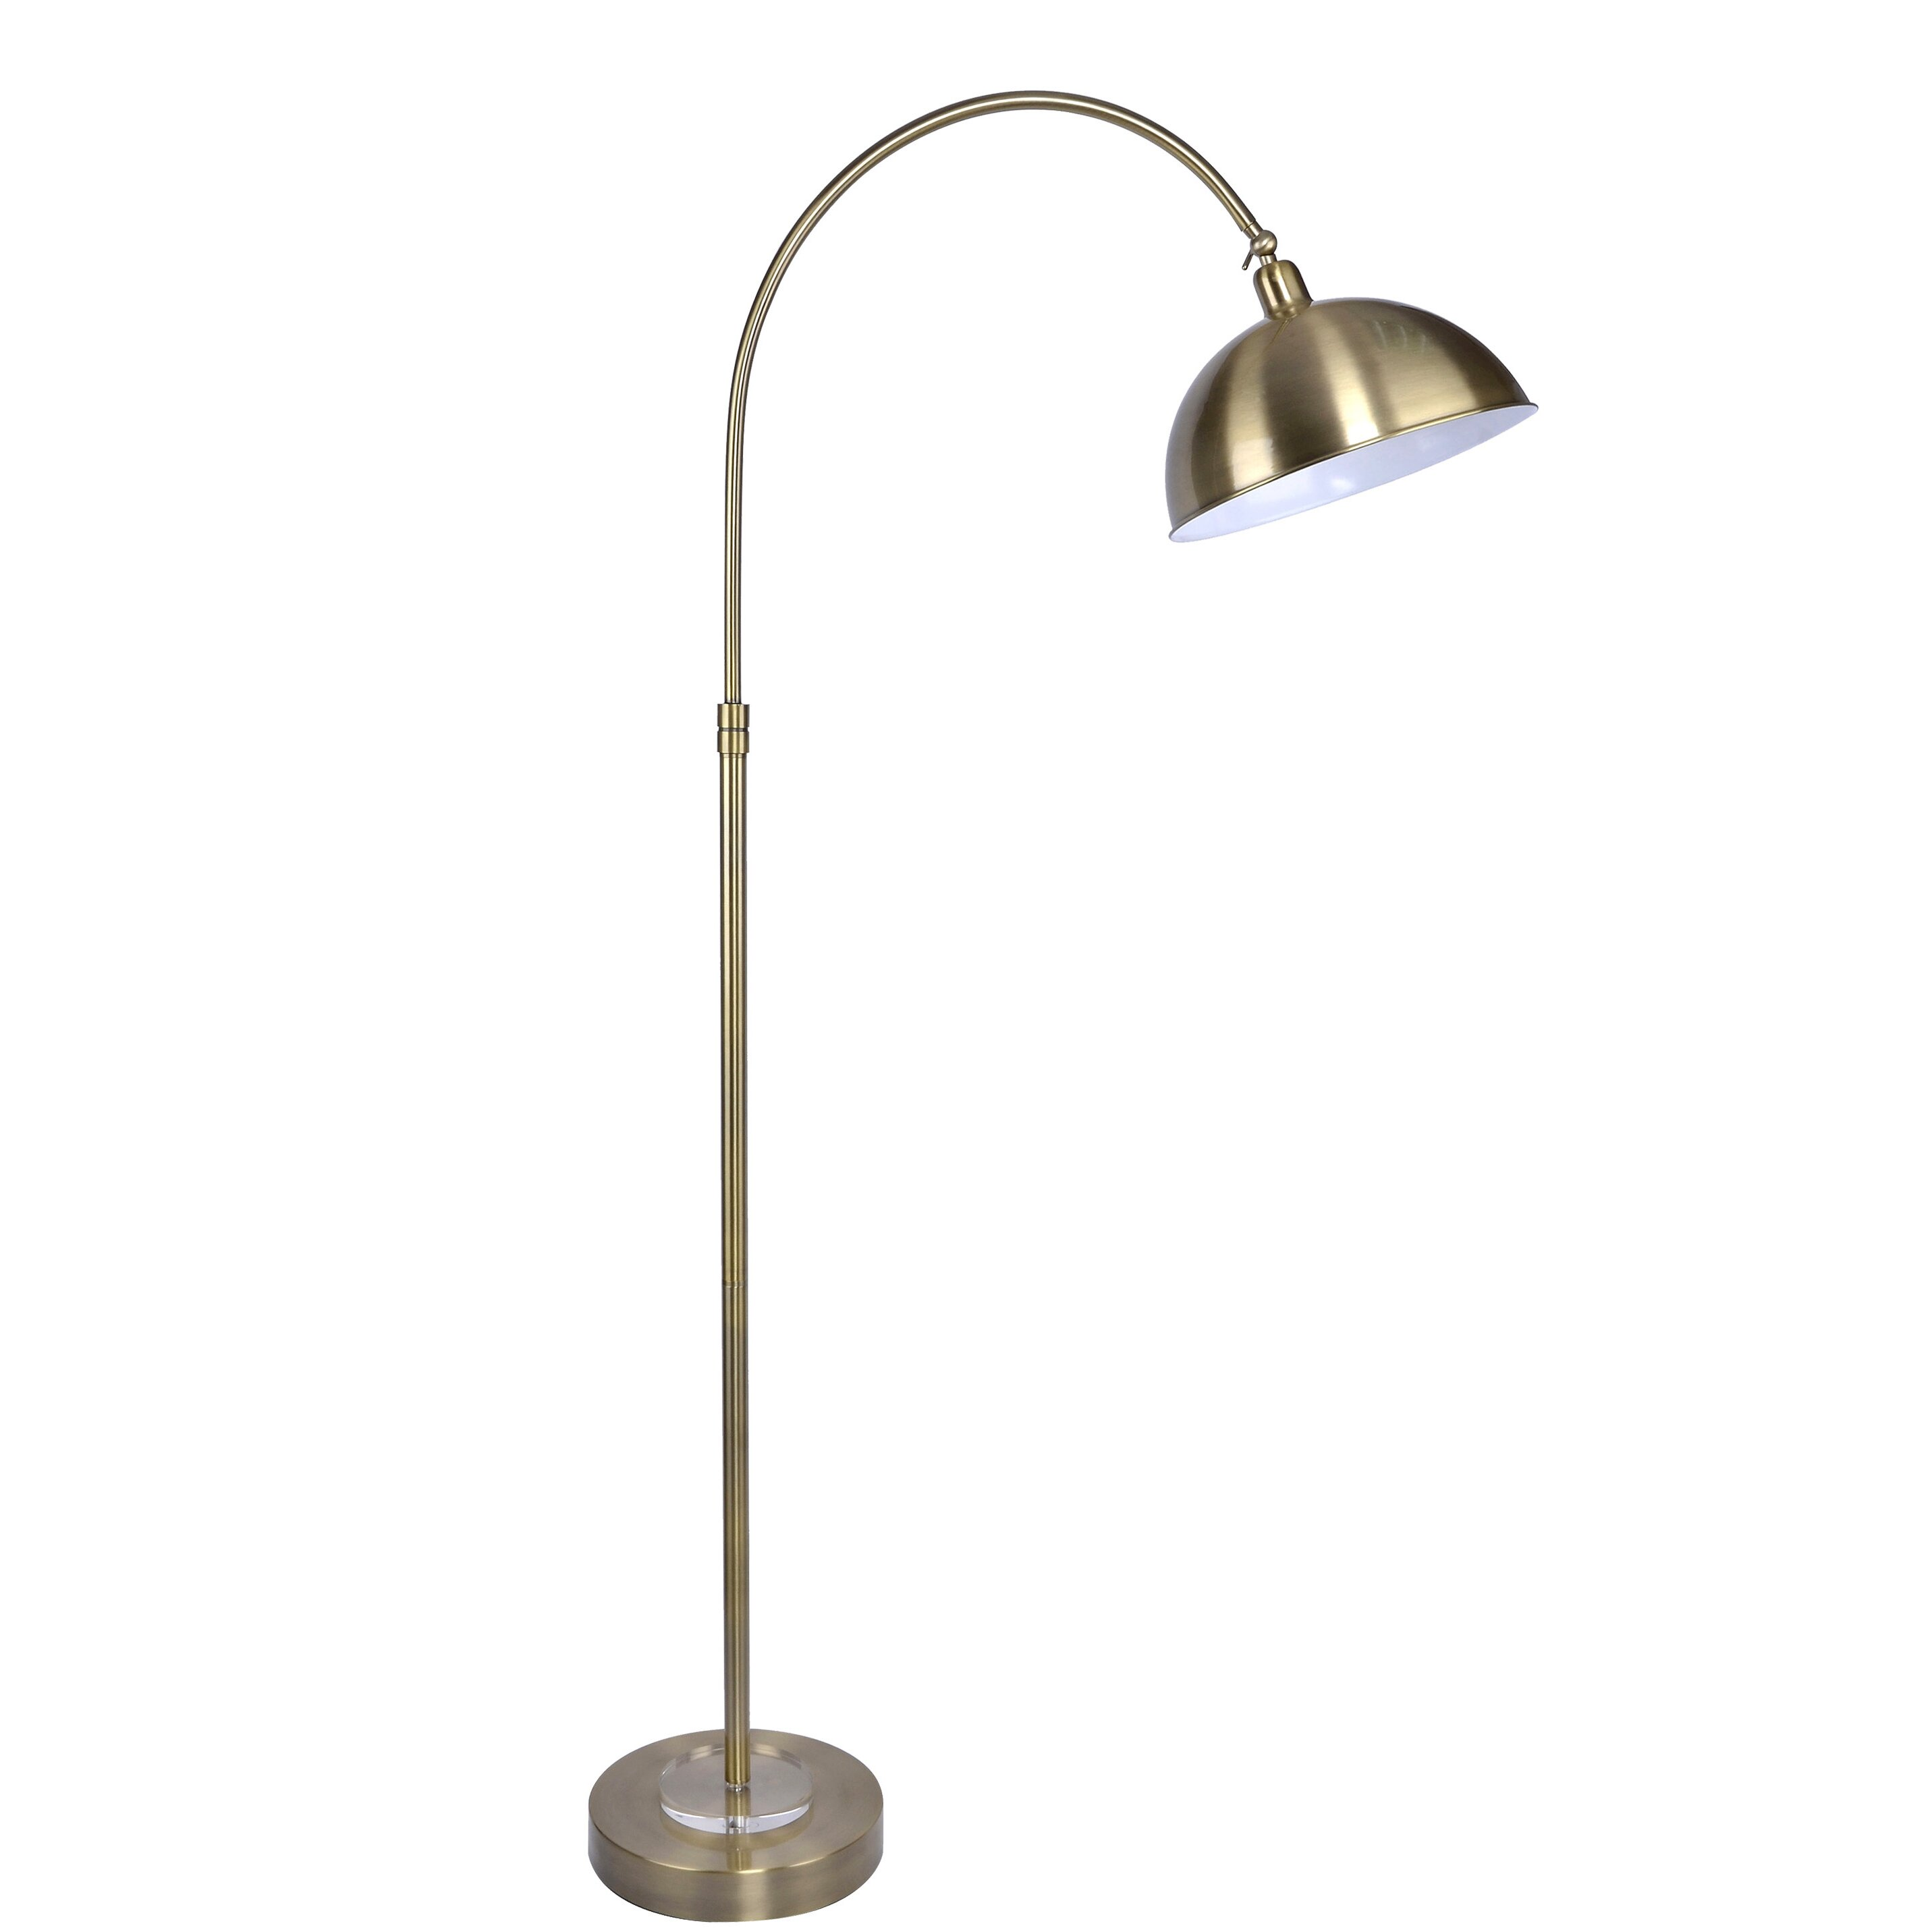 Eldshult table lamp ikea fabric shade gives a diffused and decorative - Vintage 63 5 Arched Floor Lamp